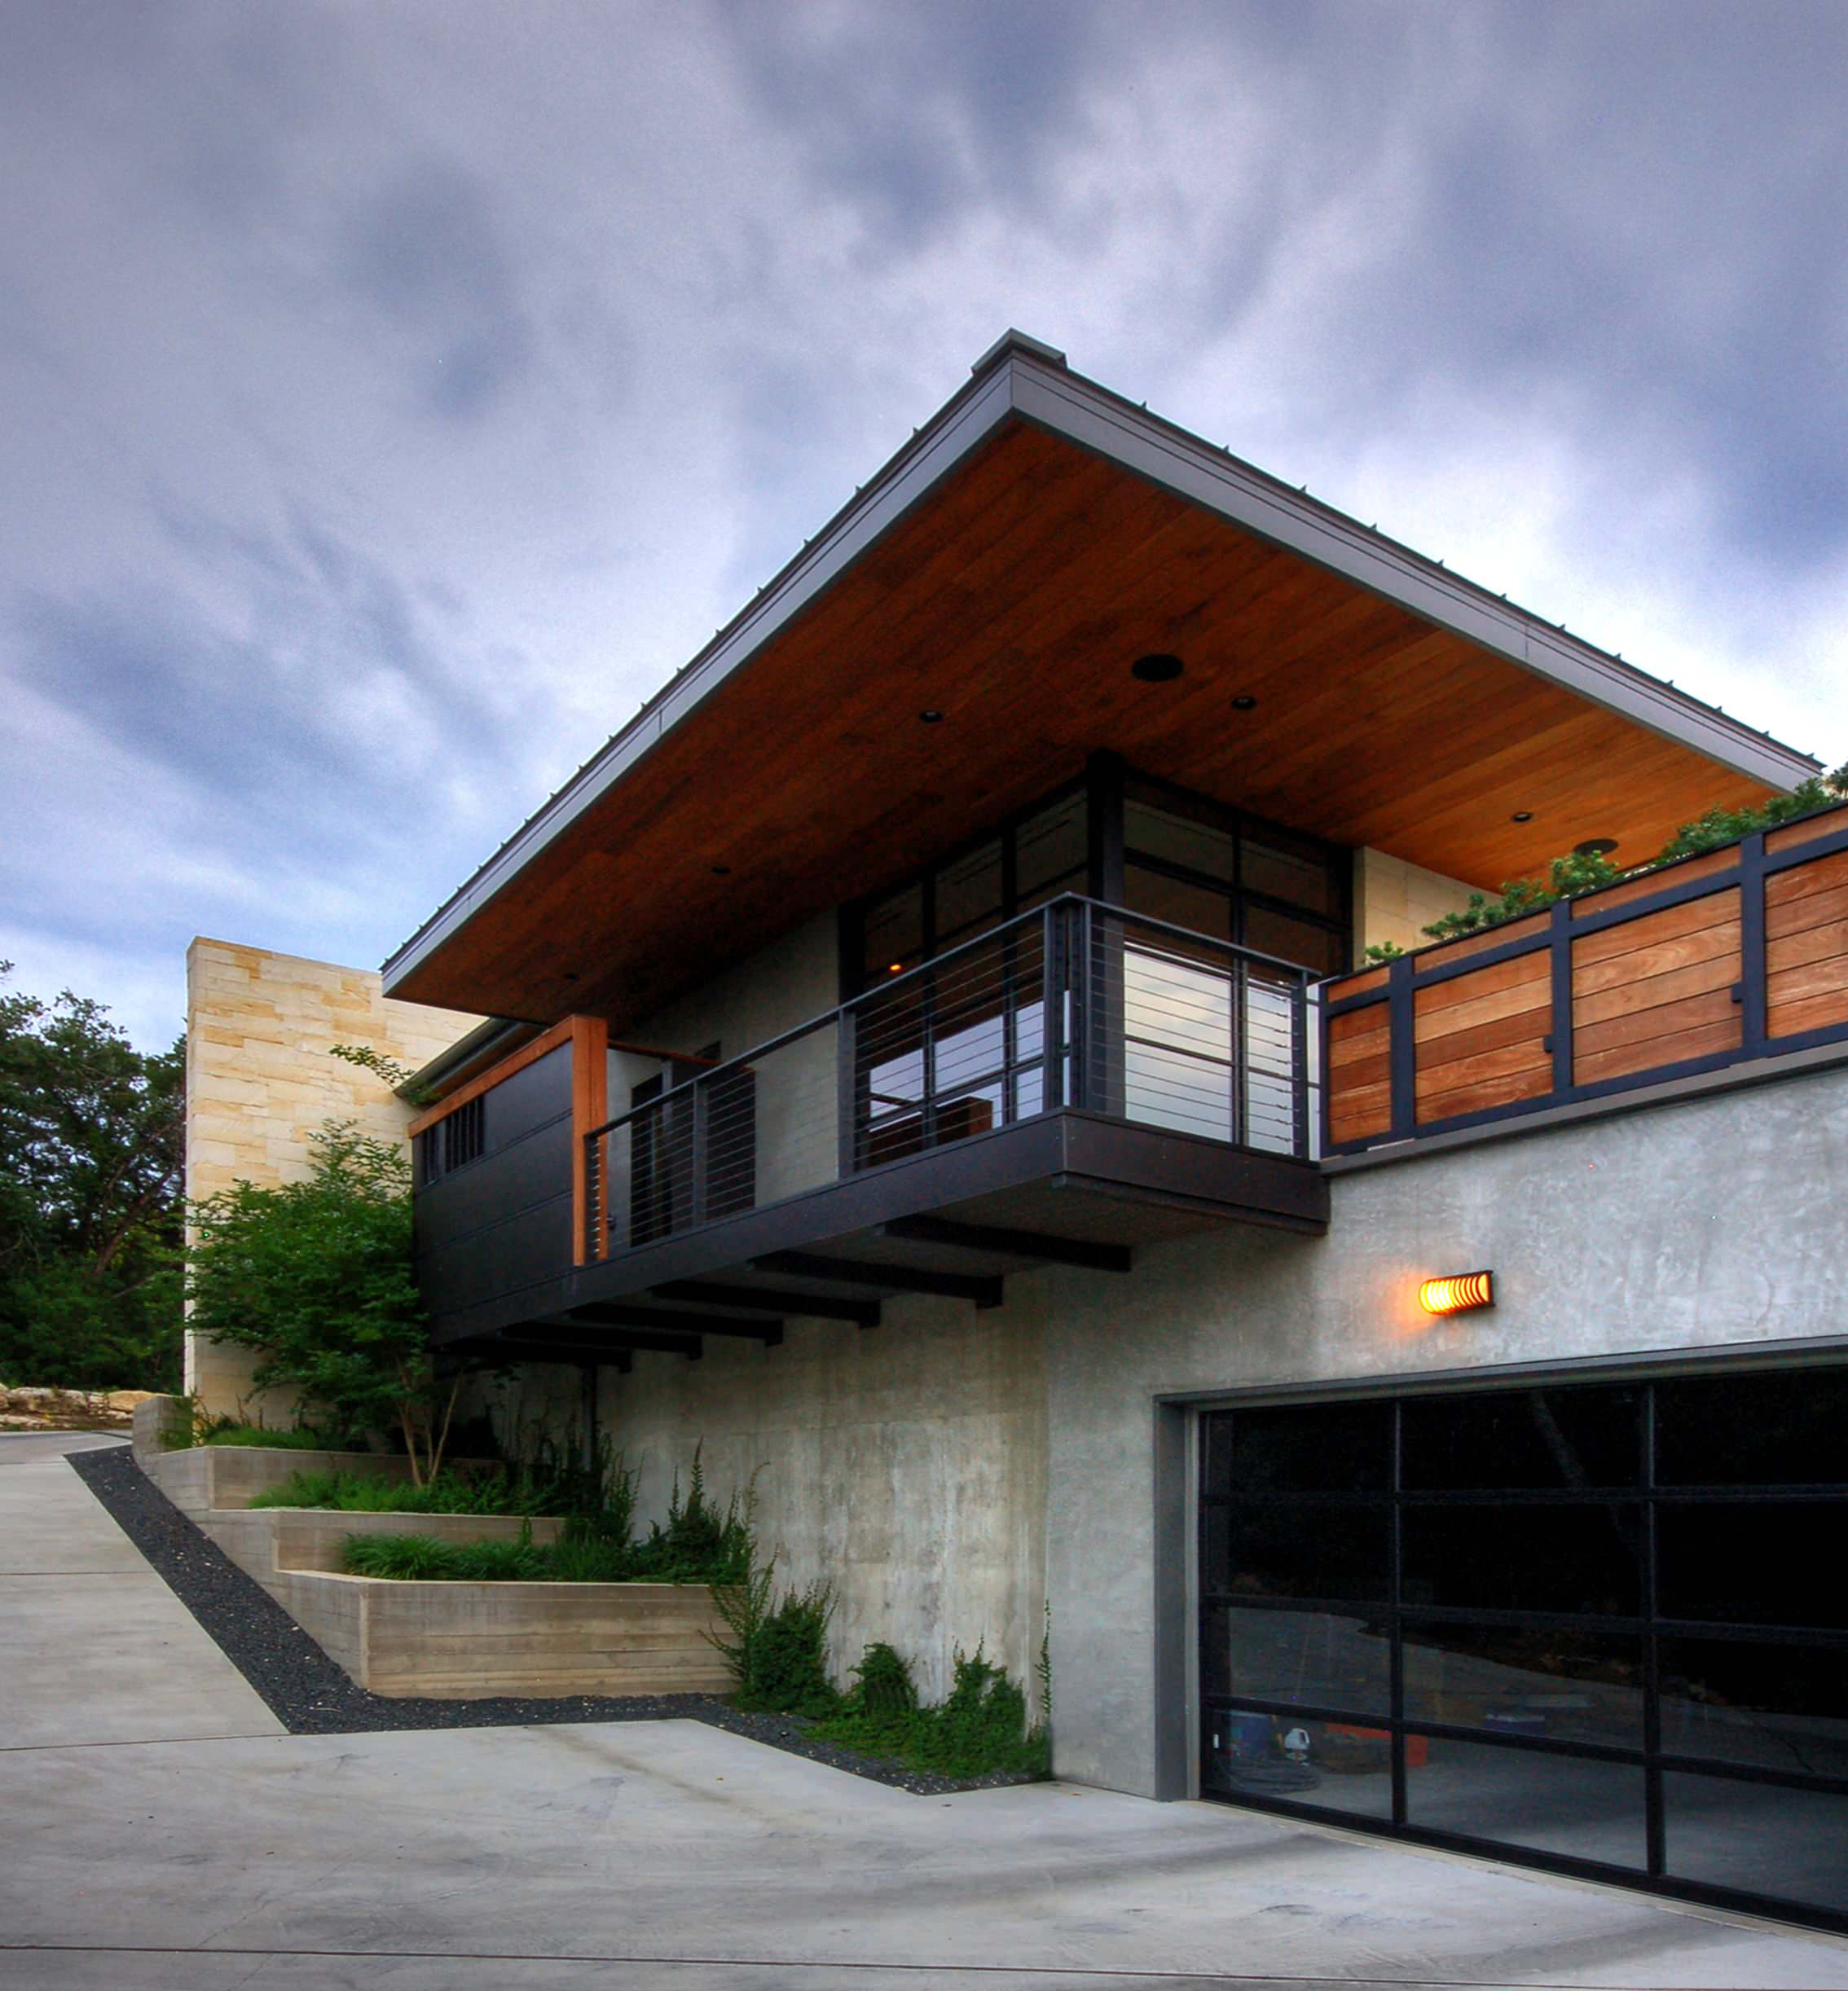 75 Beautiful Modern Exterior Home Pictures Ideas February 2021 Houzz